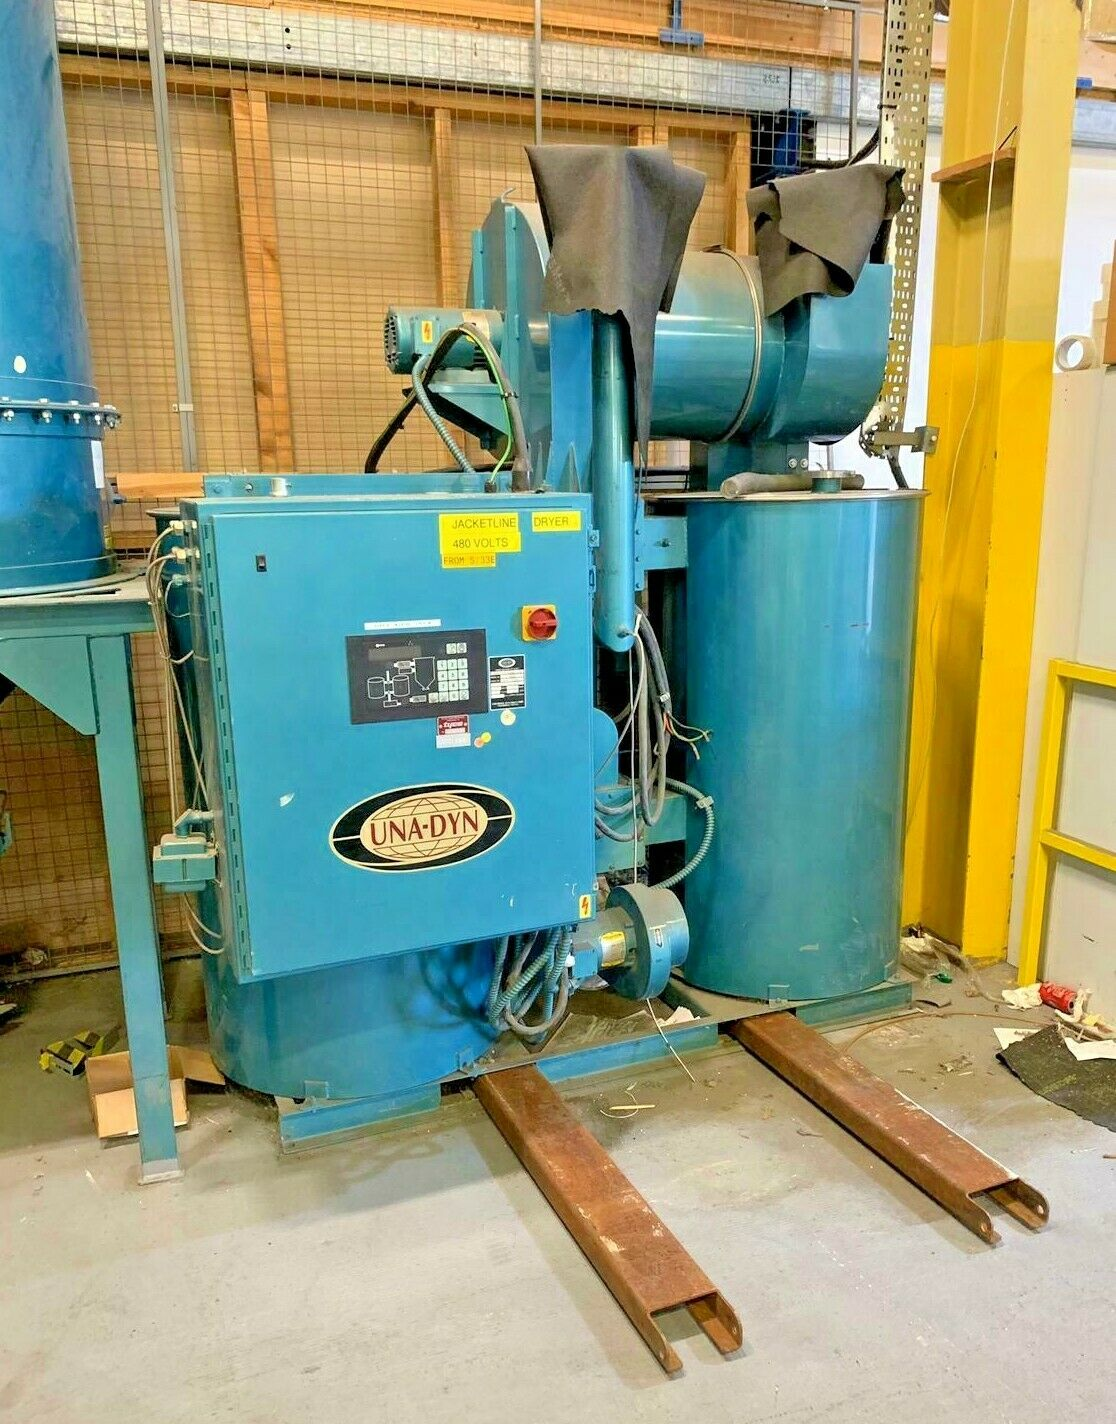 UNA DYN DHD-15 Dehumidifier Hopper Dryer - Used - Industrial Injection Moulding Dryer Machine. Model DHD-15 / 460 Volts3 Phase / 60 Cycles - 55 AmpsThis machine has barely been used and is in excellent working order